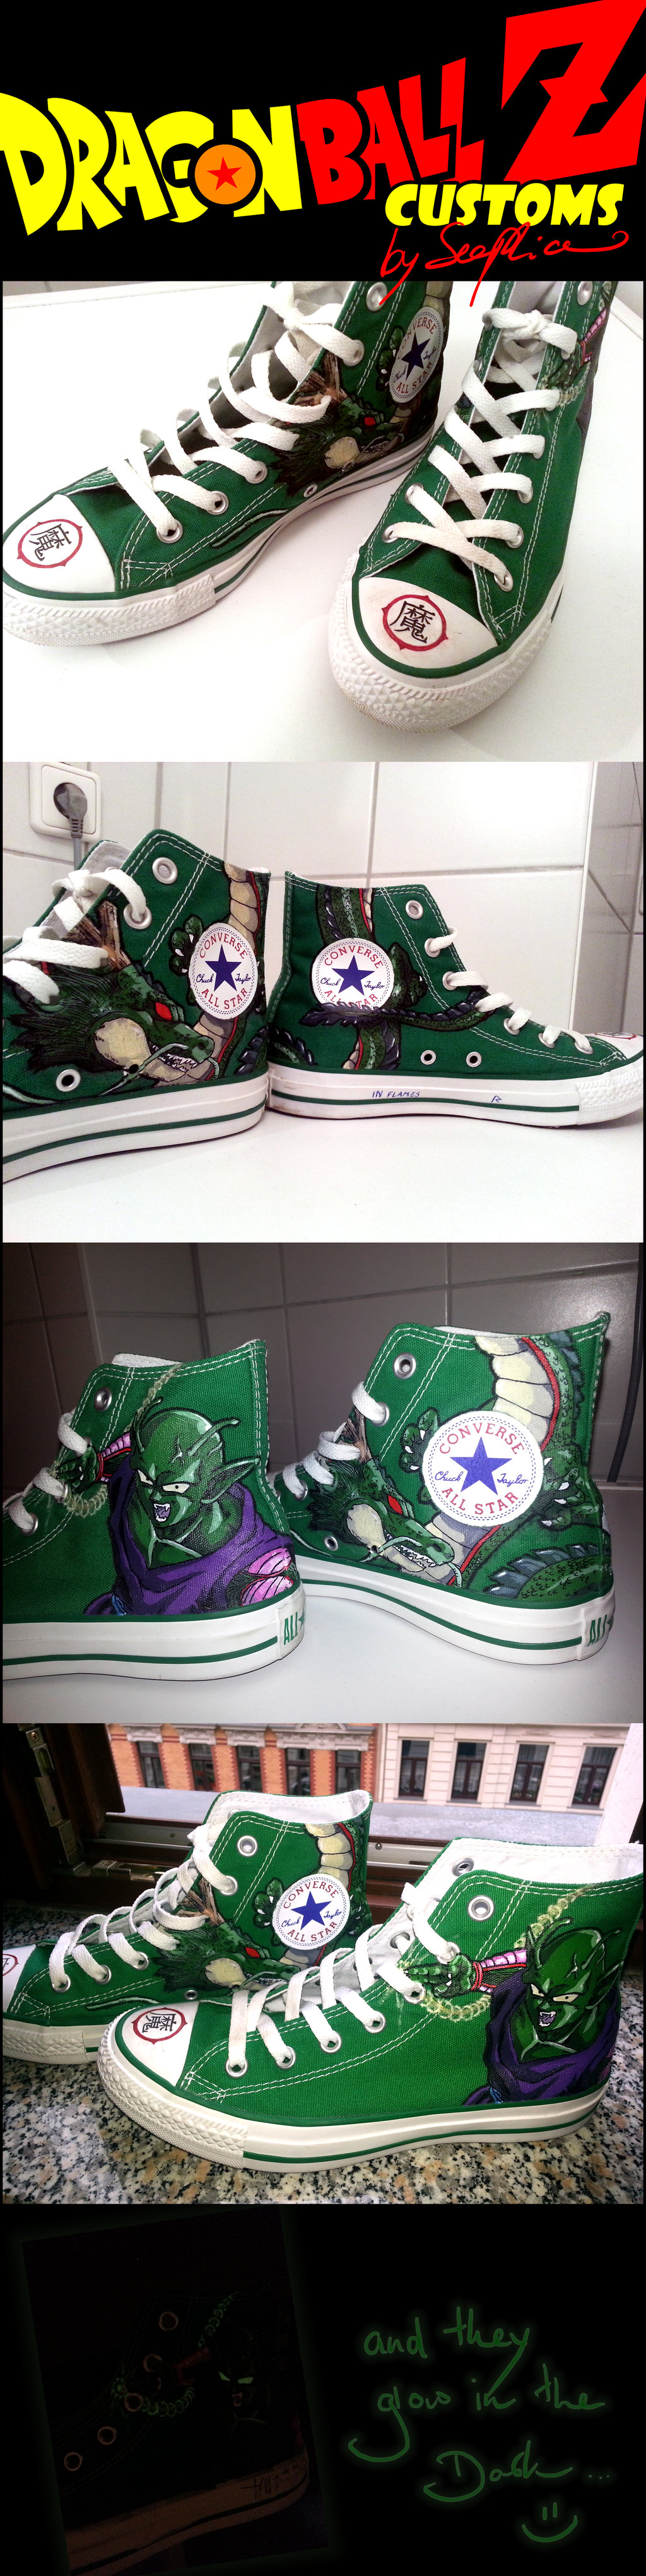 DragonBall Z custom made shoes by Seephice on DeviantArt